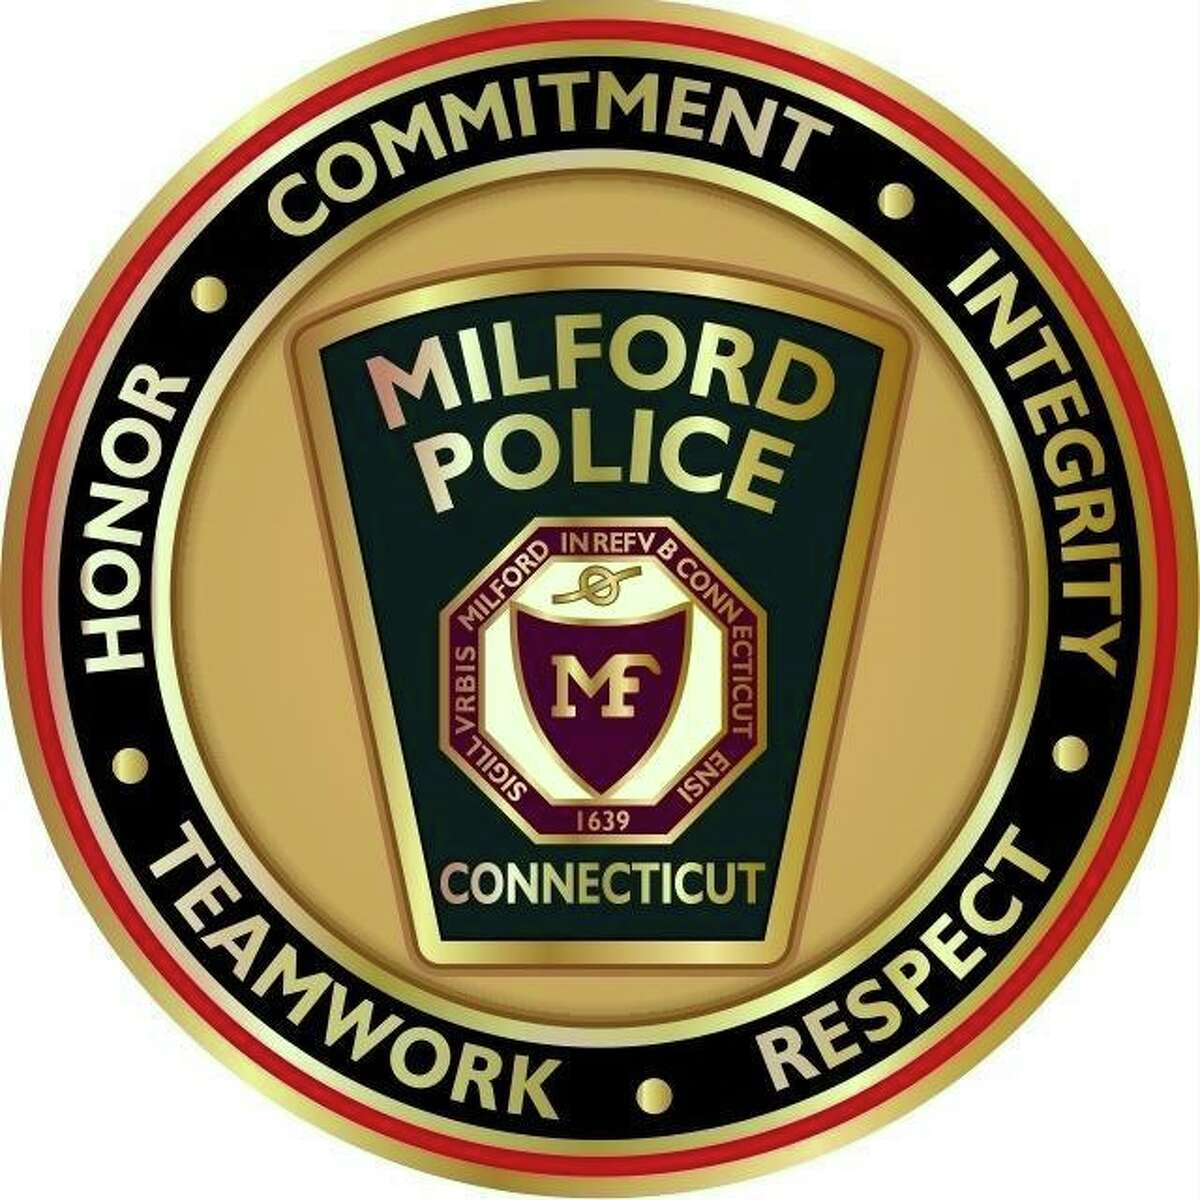 Two people were arrested Sunday morning on Aug. 16, 2020 after being accused of entering vehicles in the area of Berwyn Street in Milford.